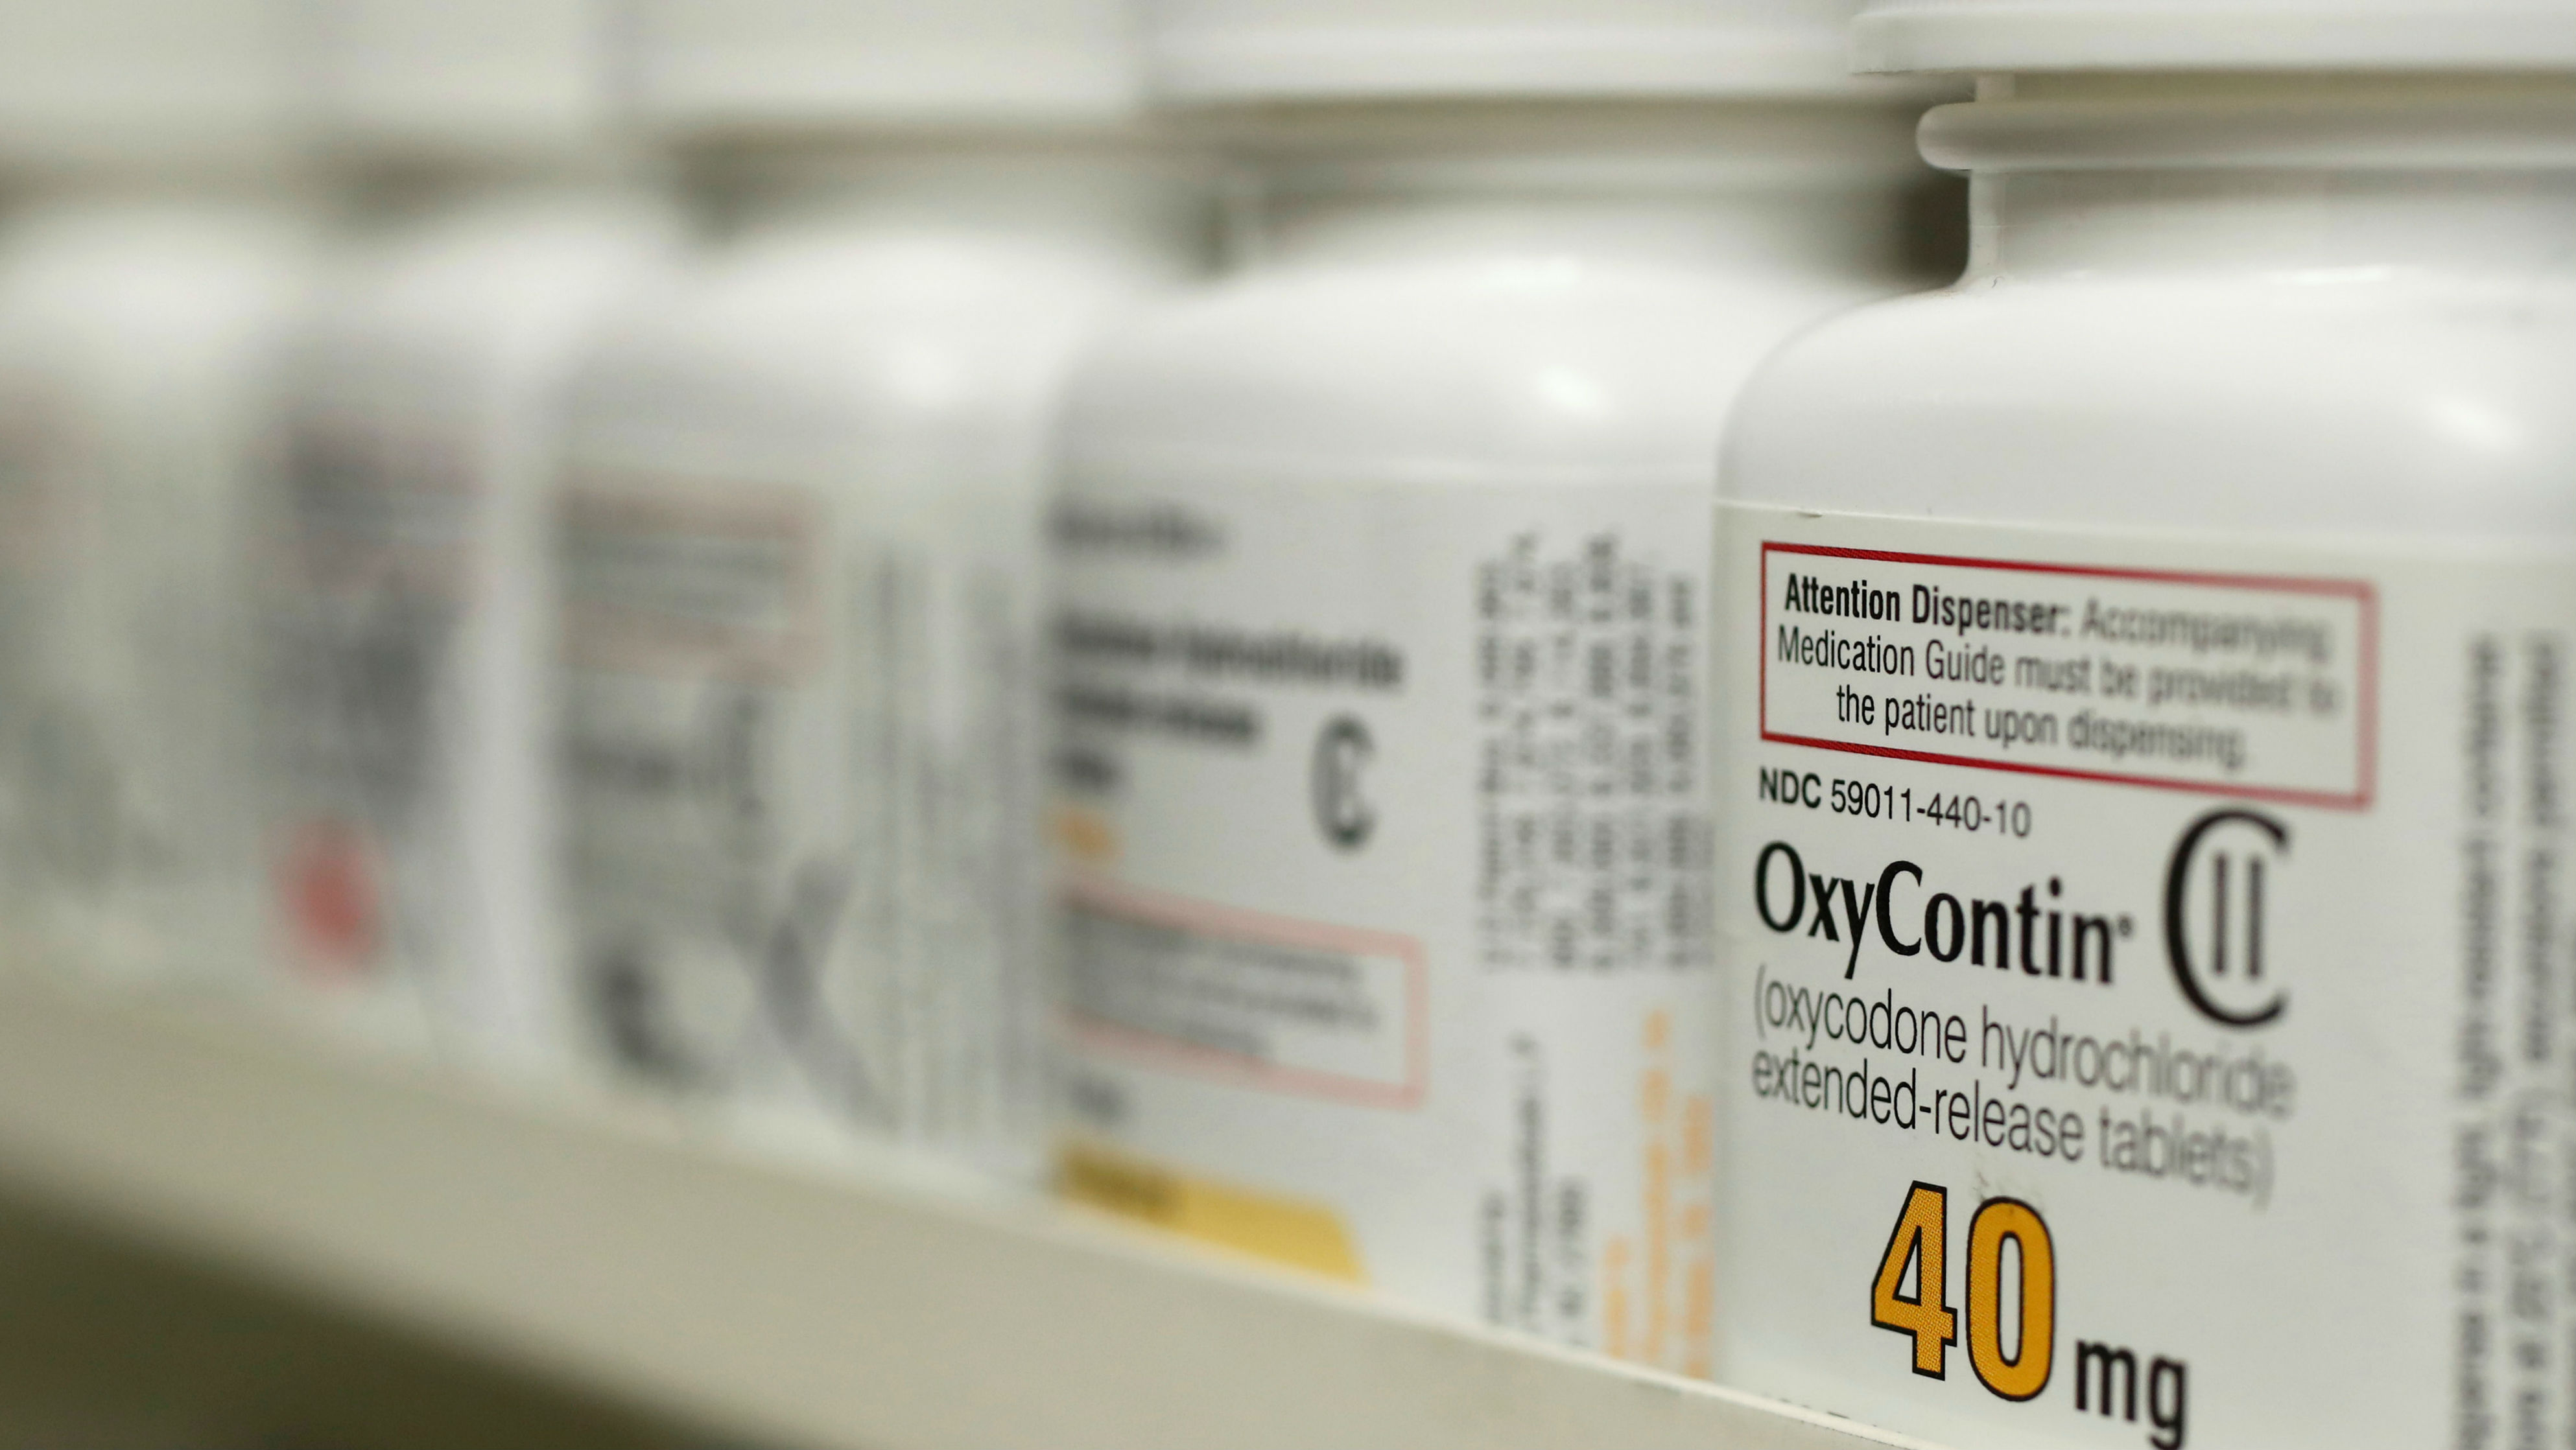 Bottles of prescription painkiller OxyContin, 40mg pills, made by Purdue Pharma L.D. sit on a shelf at a local pharmacy, in Provo, Utah, U.S., April 25, 2017.